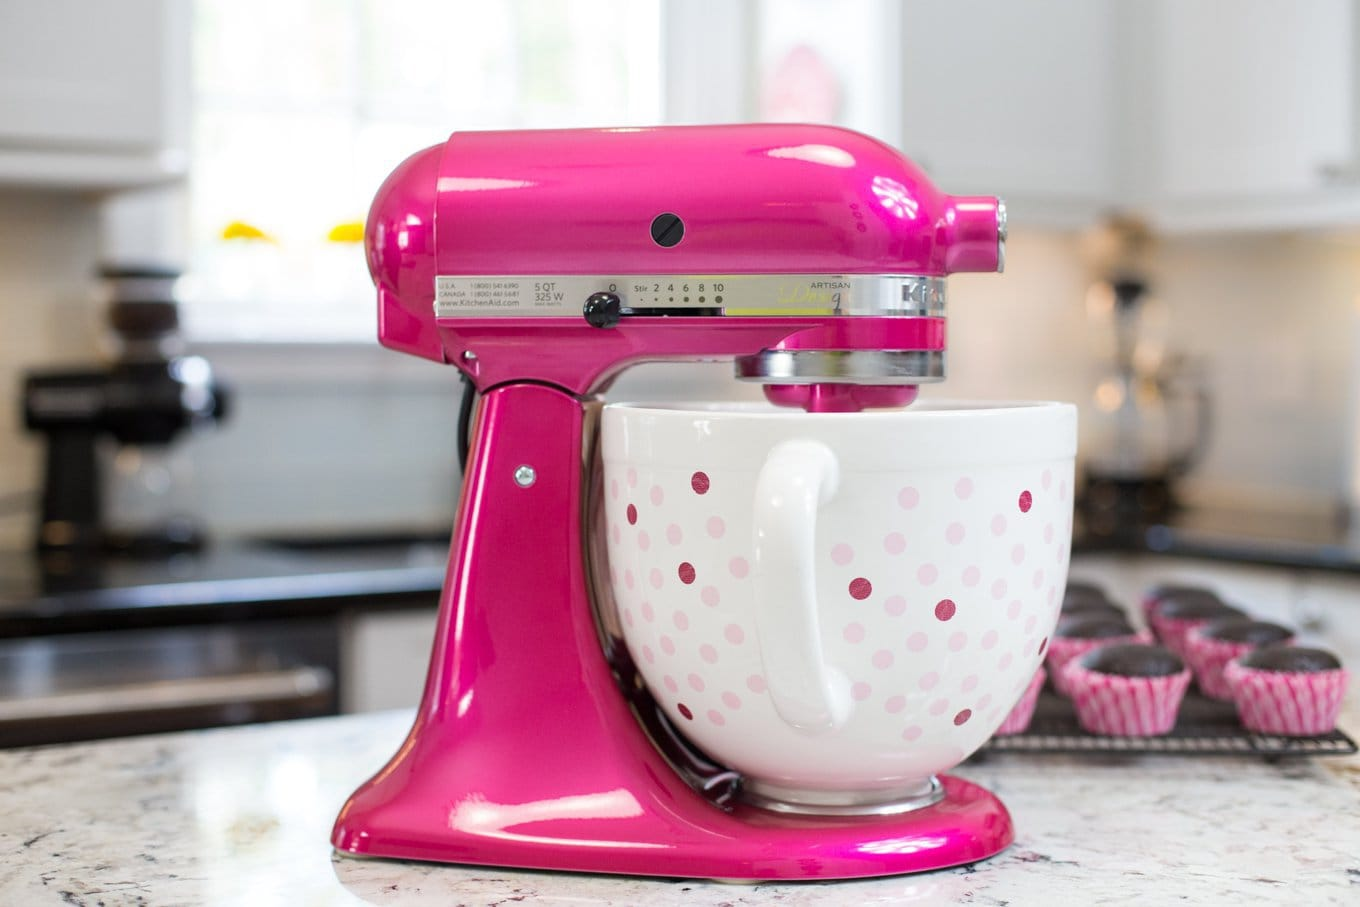 This KitchenAid Raspberry Ice Artisan Mixer with Polka Dot Bowl was created by KitchenAid to help promote awareness and help fund the fight against breast cancer through the Susan Komen Foundation thecafesucrefarine.com